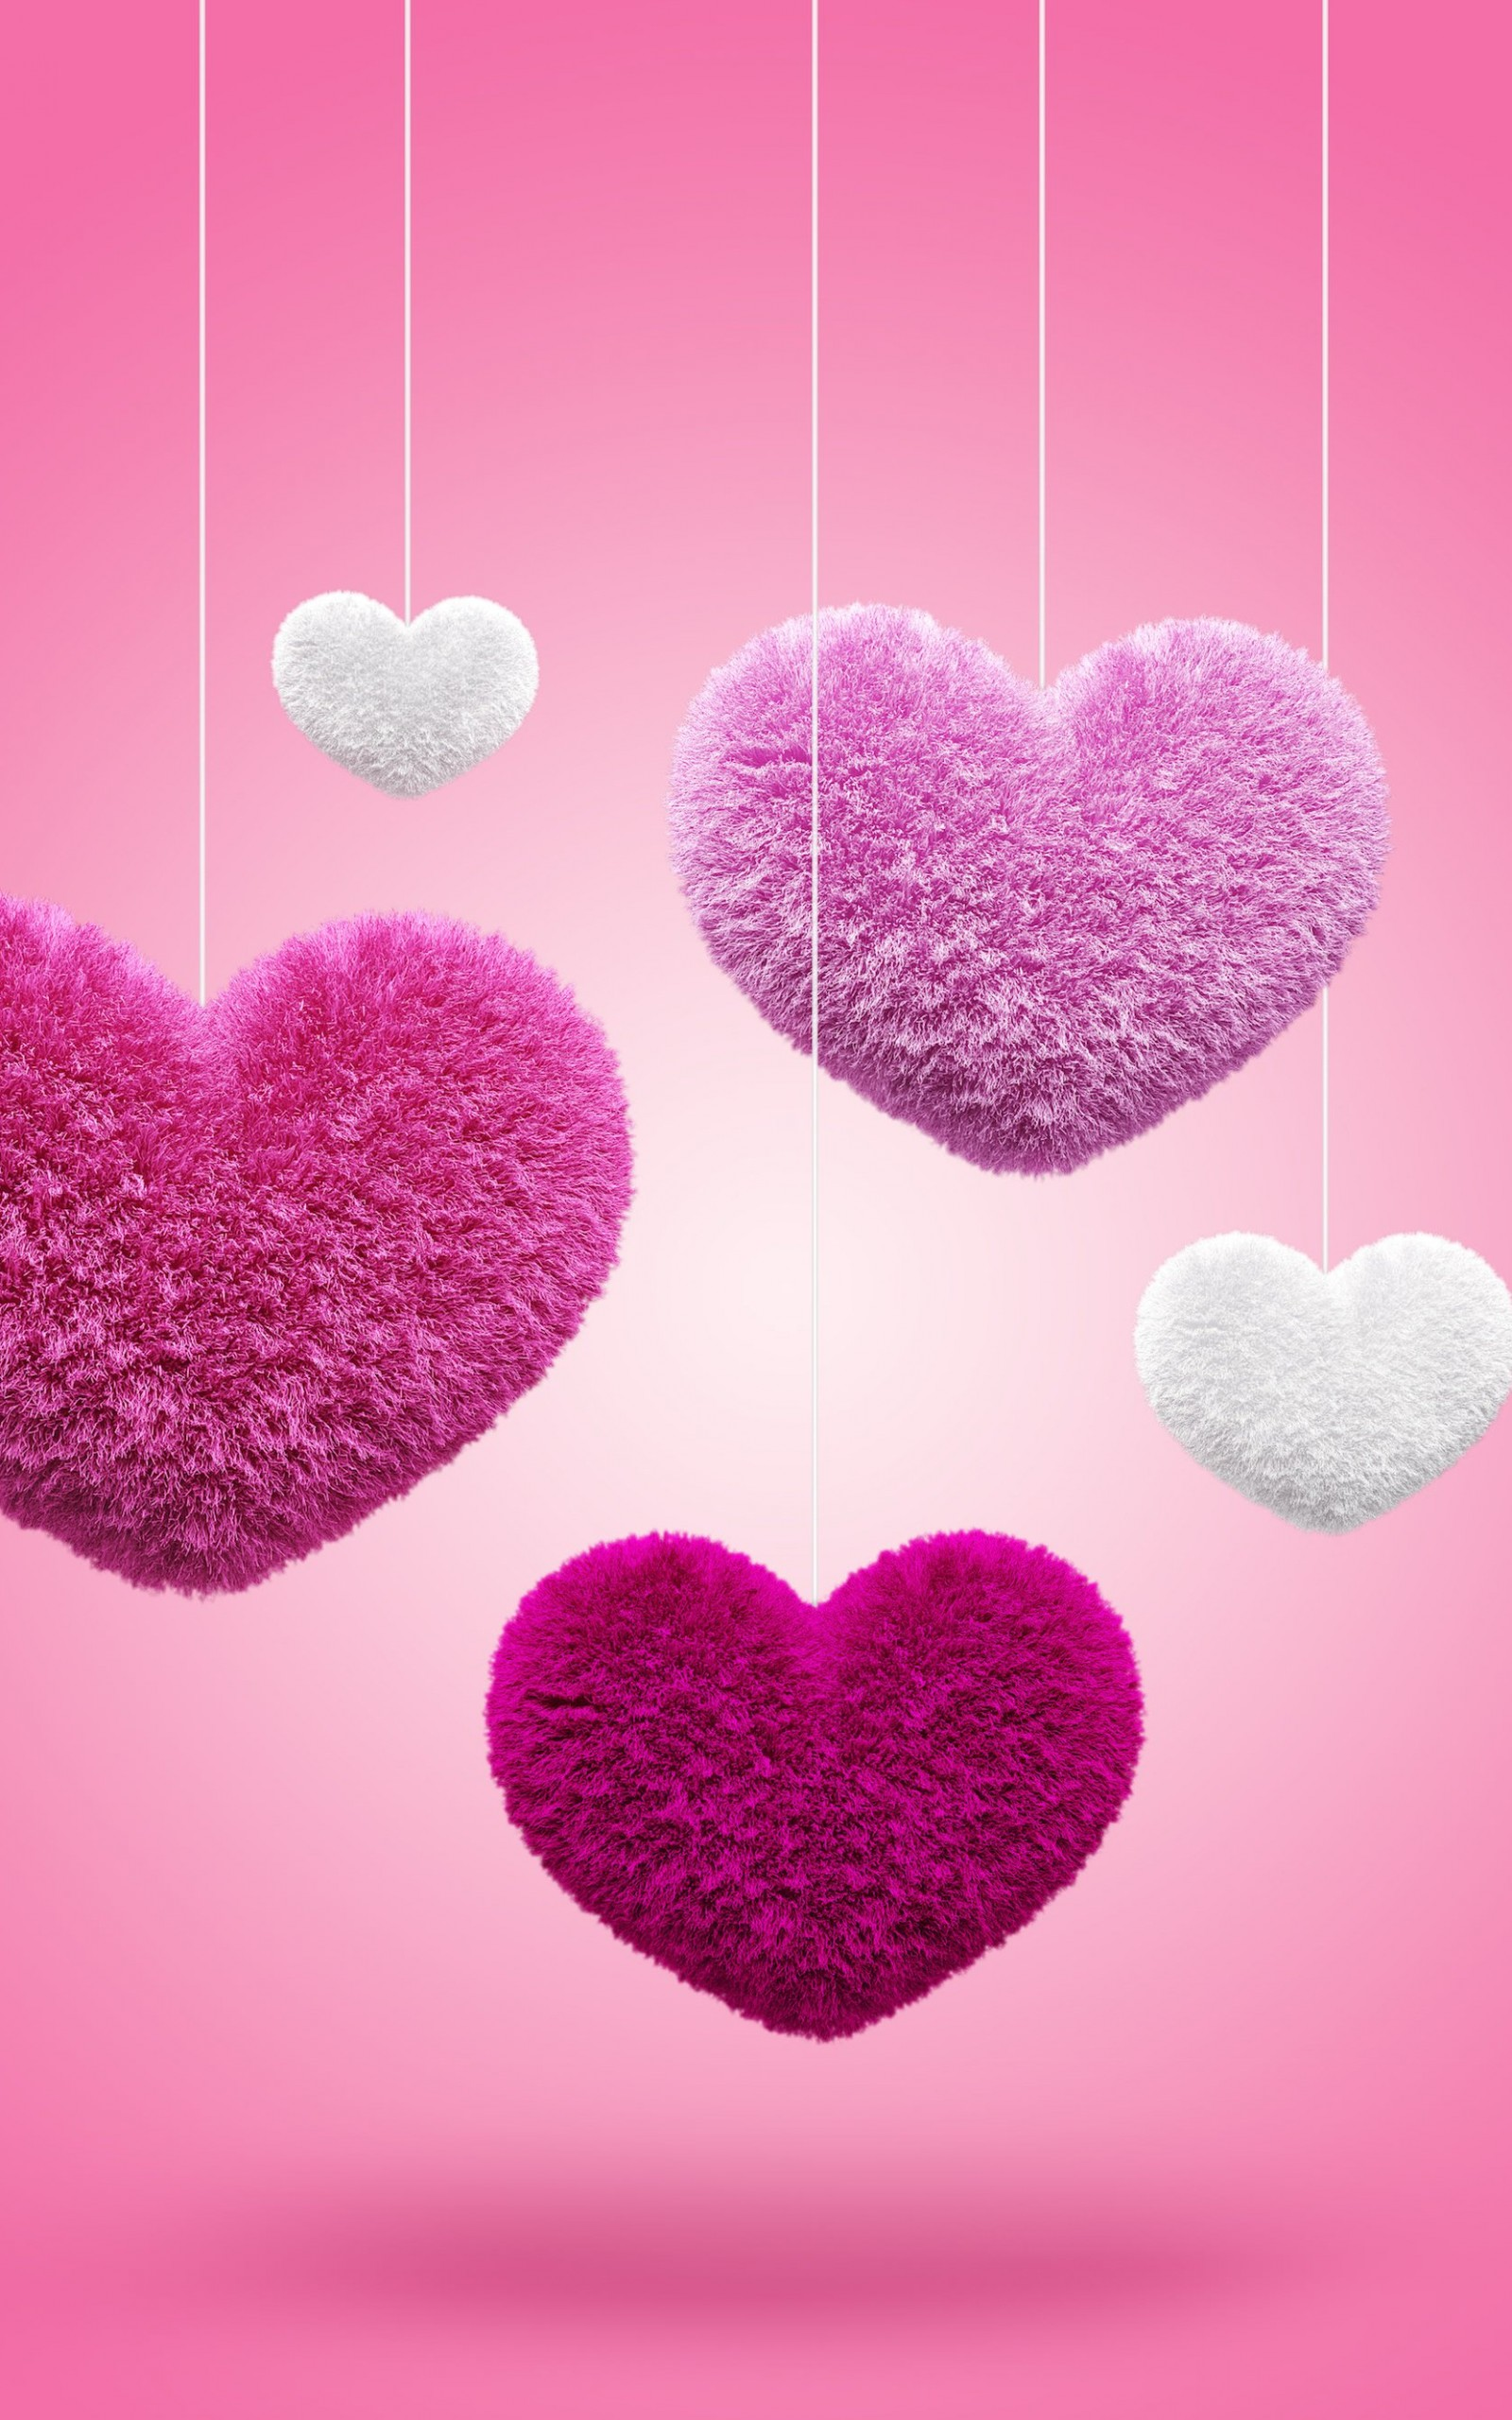 Fluffy Hearts Wallpaper for Amazon Kindle Fire HDX 8.9